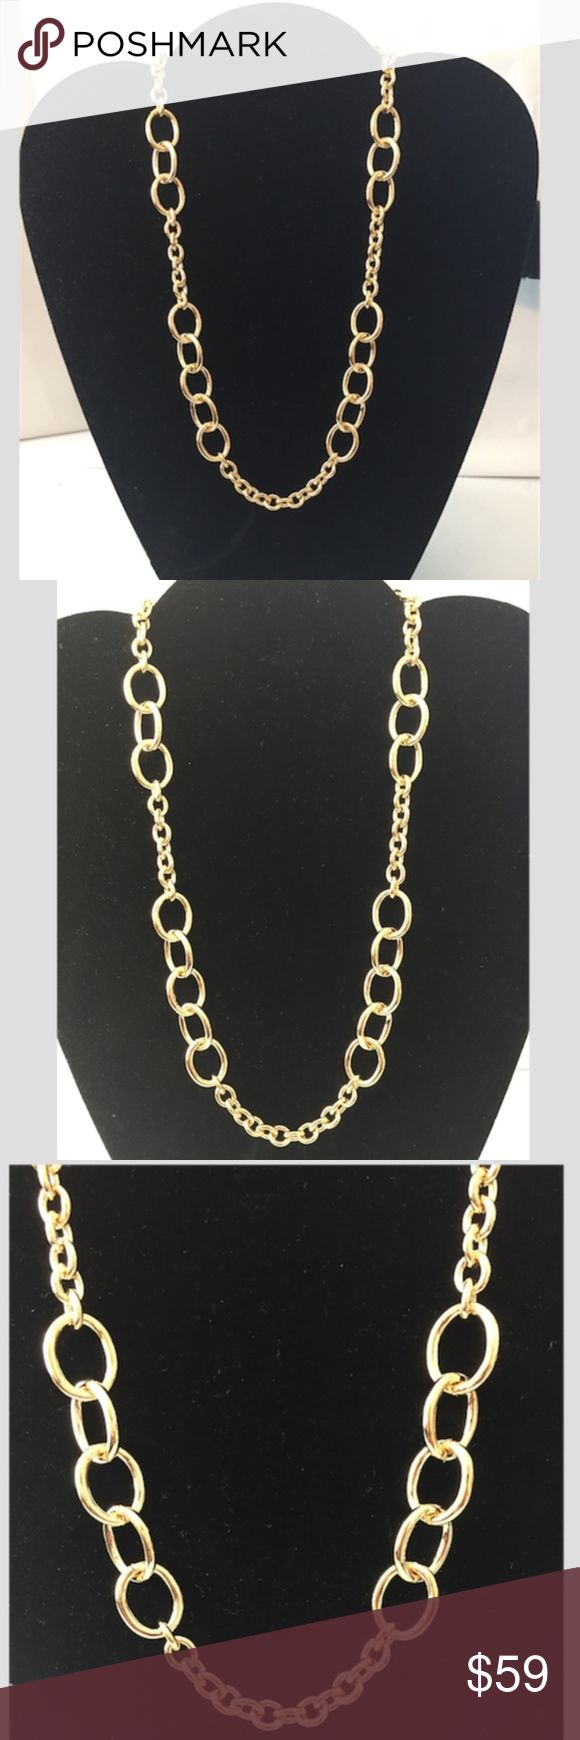 """Italian crafted Cable Link 20"""" Necklace 18K/Bronz Brand new Moda Al Massimo™ 18k Yellow Gold Over Bronze Cable Link Necklace. 20-inch chain. Measures Approximately 9/16 Of An Inch In Width And Has a Lobster Claw Clasp. Made In Italy.  Introducing a modern new approach to Italian crafted jewelry, Moda al Massimo™. Meaning ultimate fashion in Italian, Moda al Massimo™ offers both classic and traditional looks as well as couture fashion--all at an affordable price and with a luxury gold look…"""